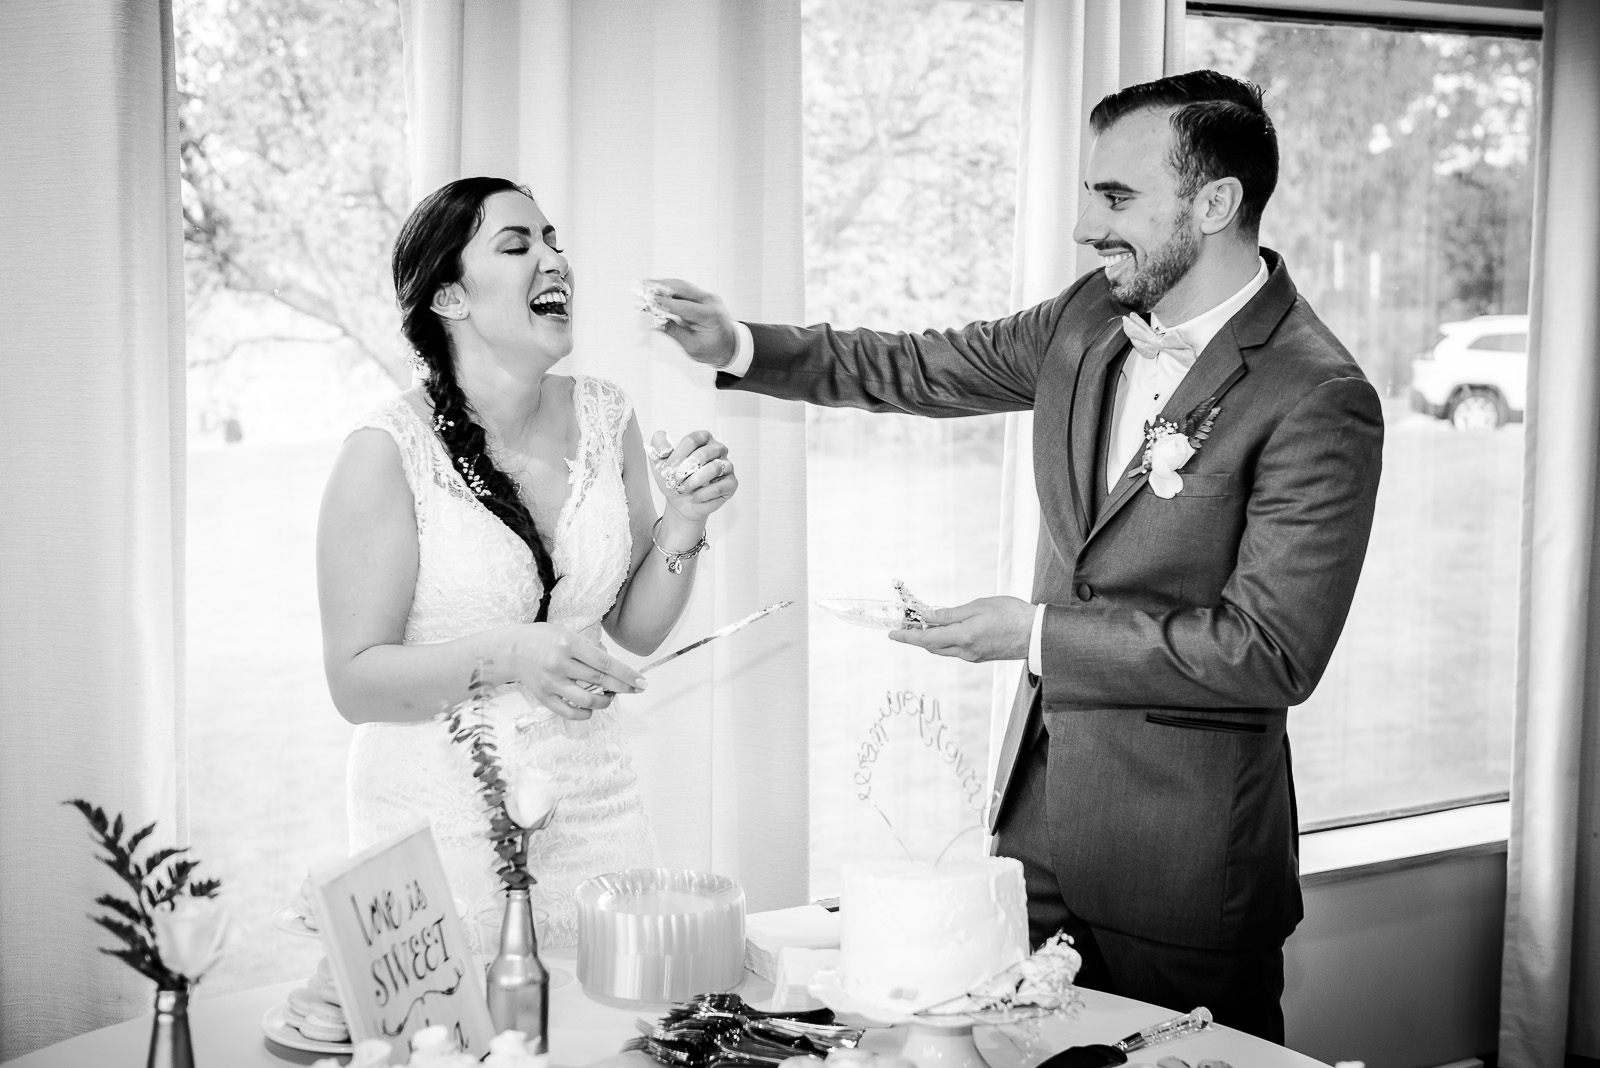 Eric_and_Christy_Photography_Blog_Katie_Travis_Wedding-61